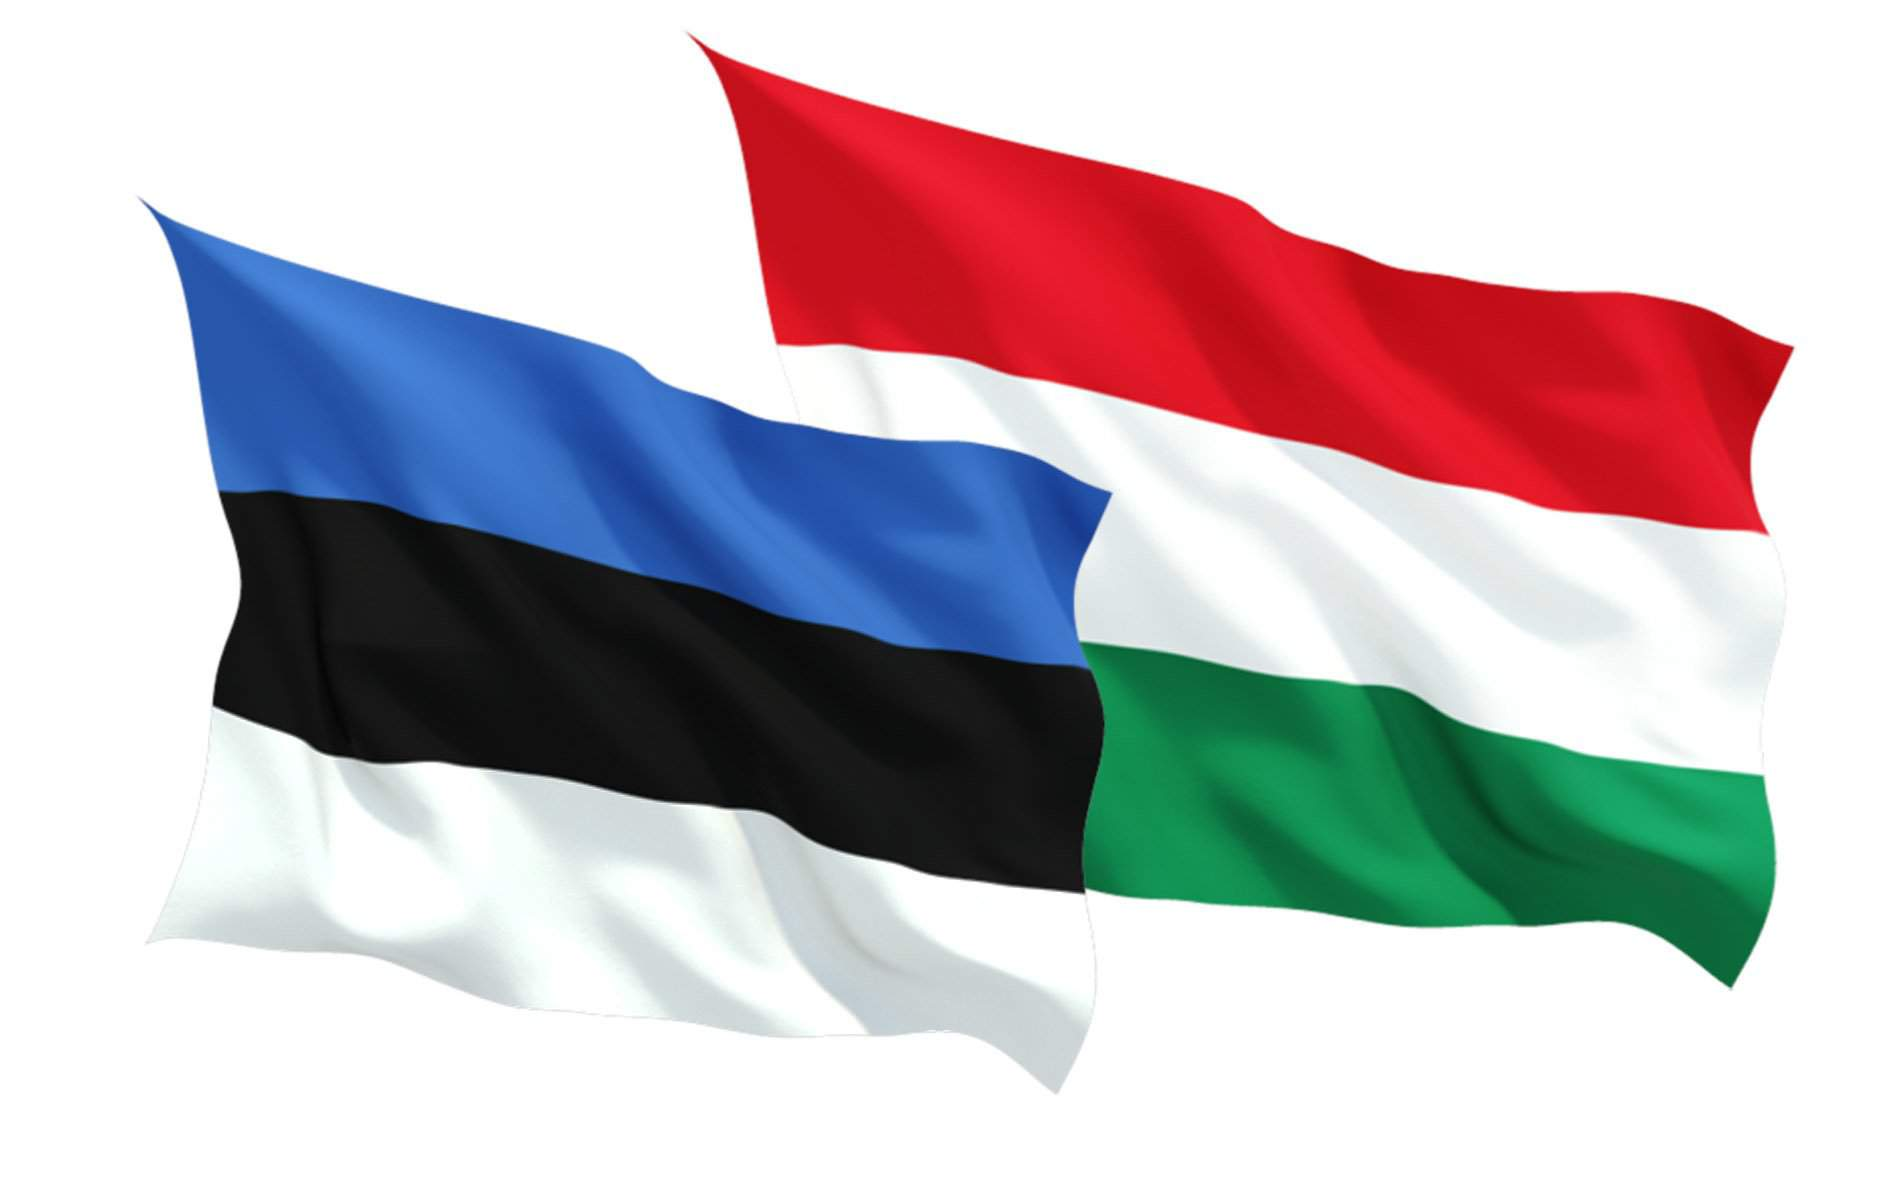 Hungarian house speaker holds talks on Europe's future in Tallinn